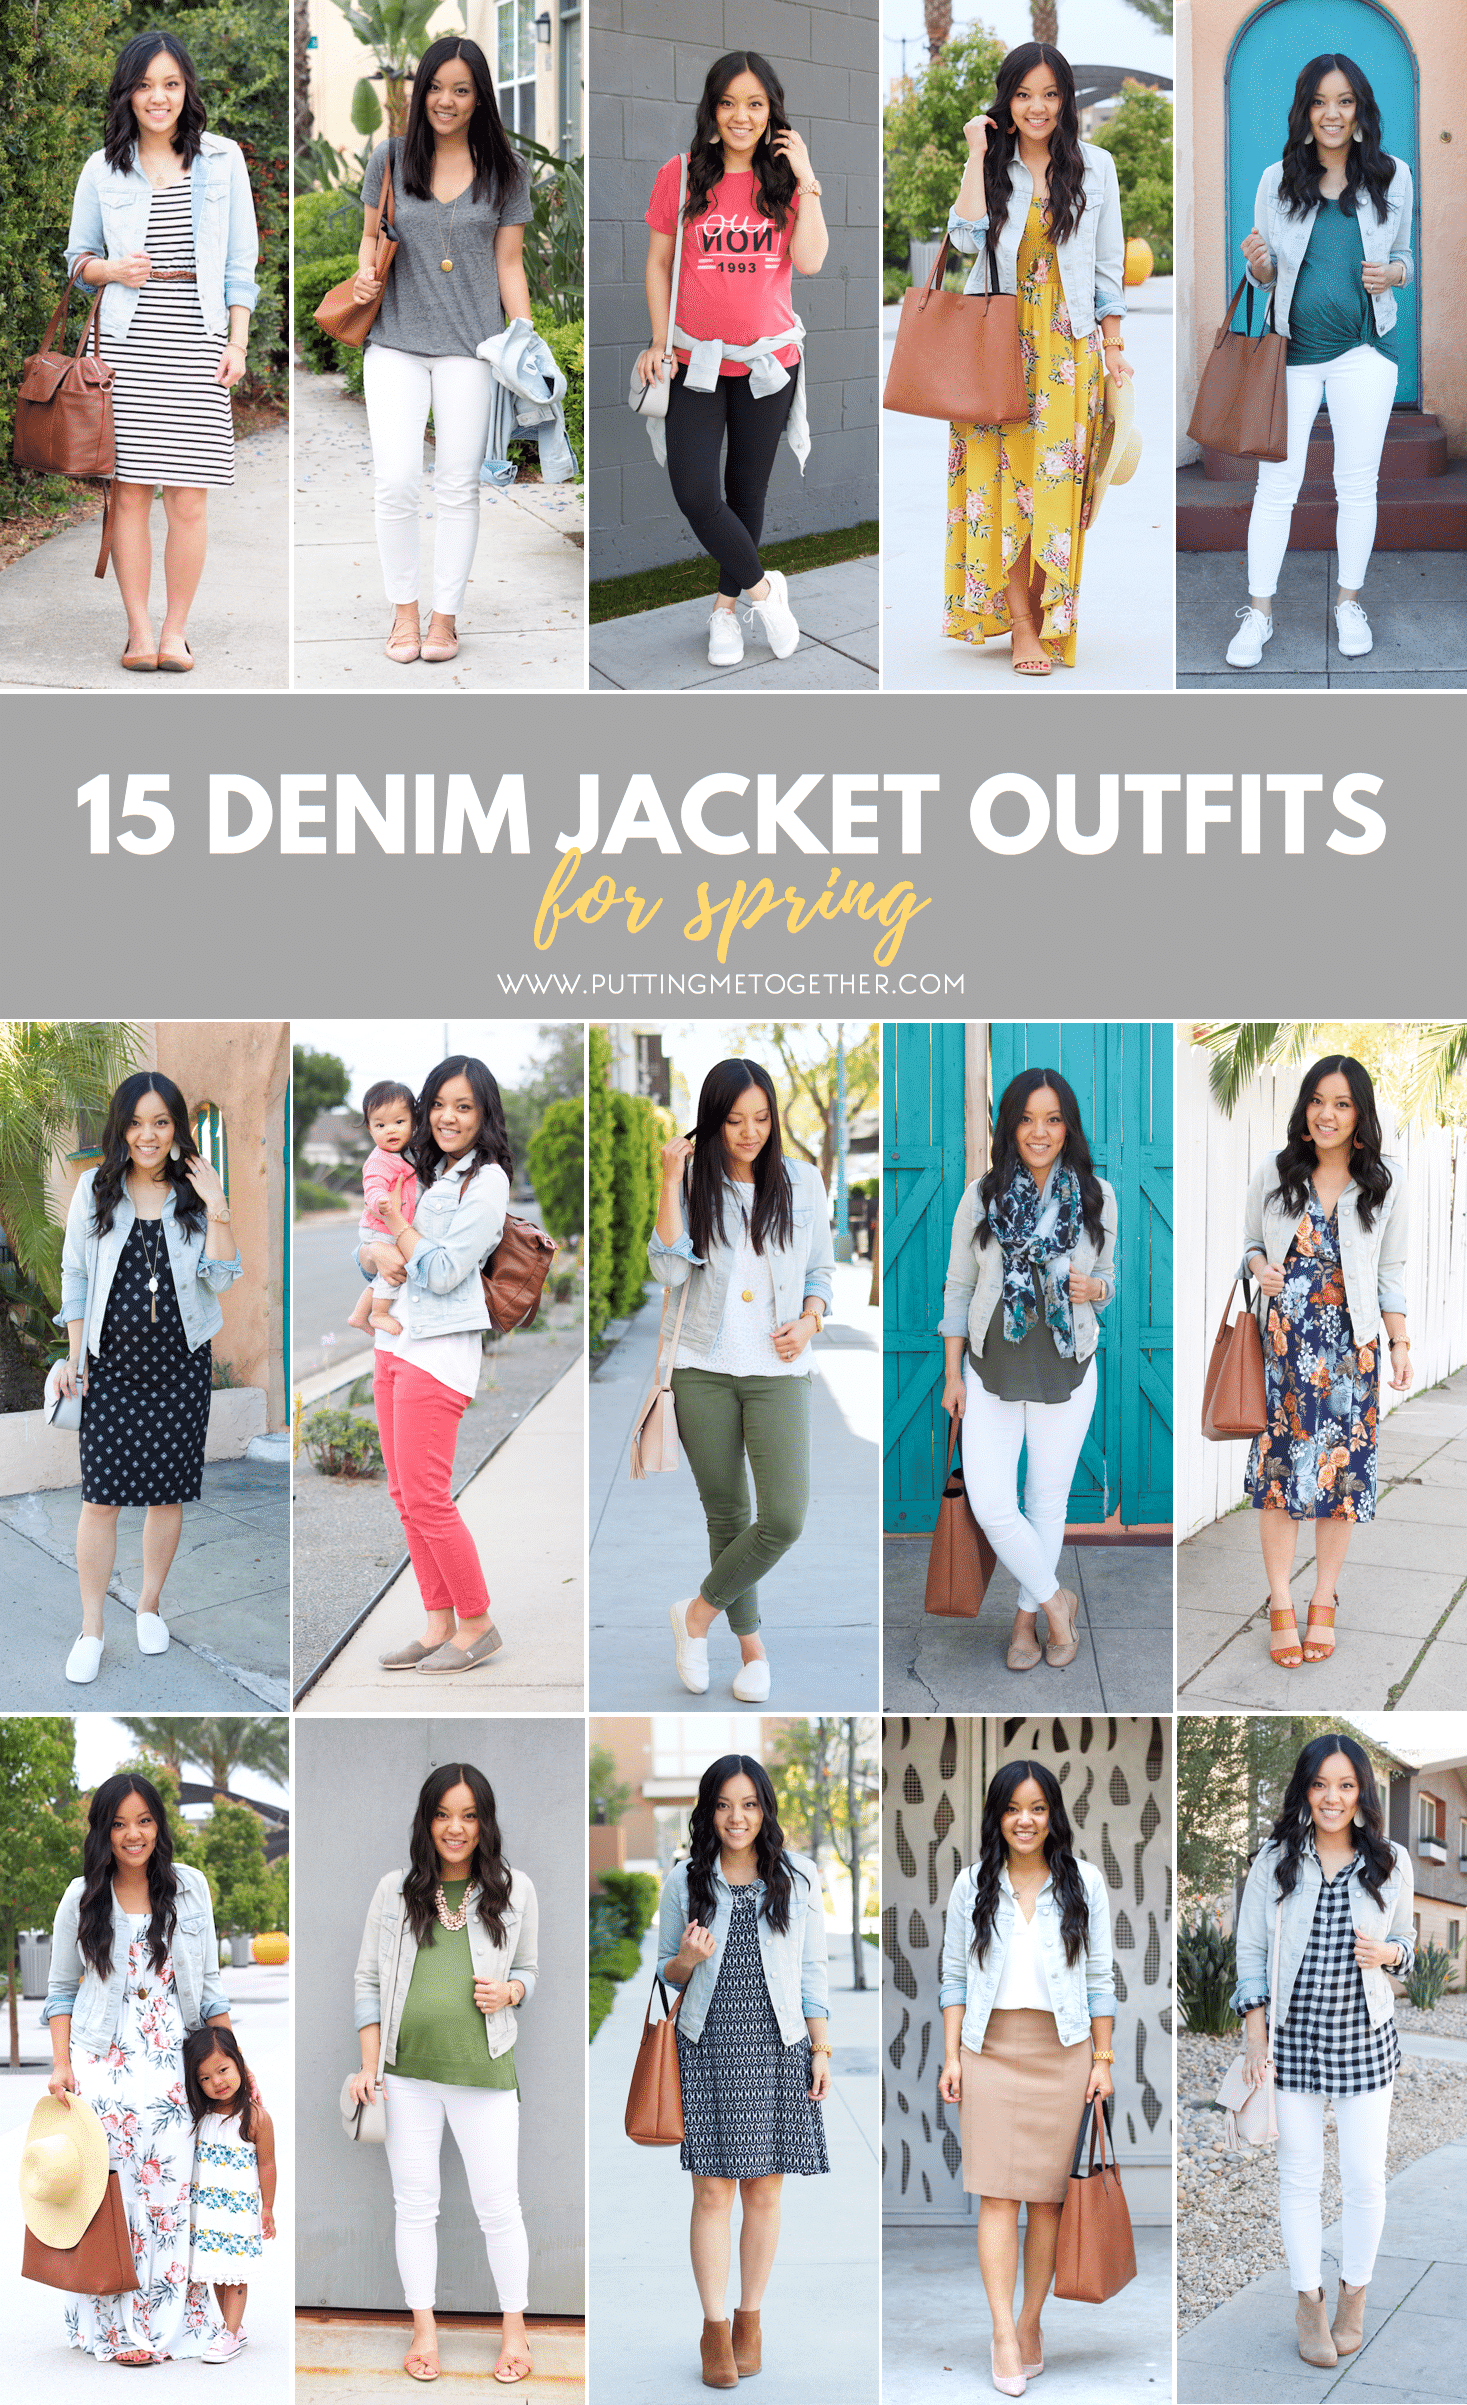 15 Denim Jacket Outfits For Spring How To Find The Perfect Denim